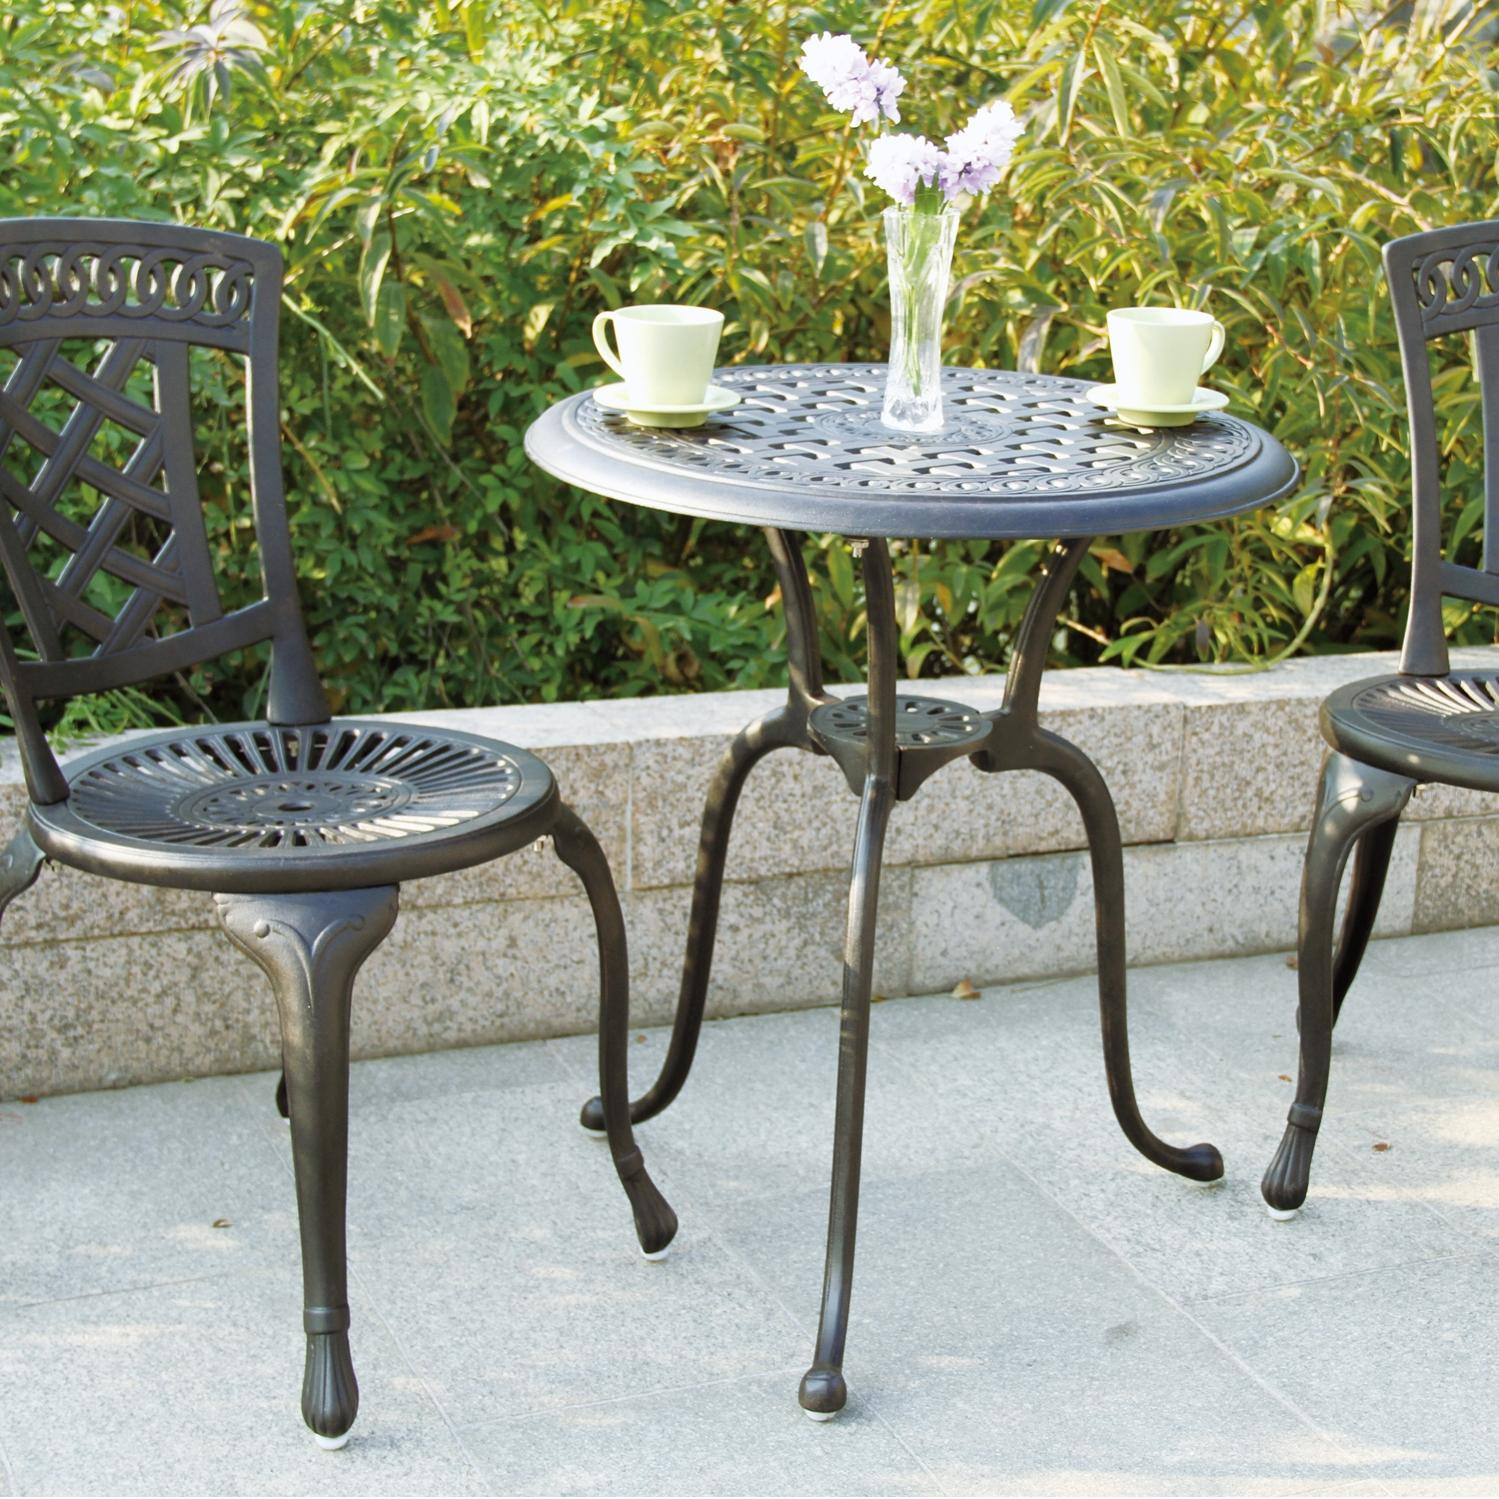 Darlee New Port 2-person Cast Aluminum Patio Bistro Set - Antique Bronze at Sears.com